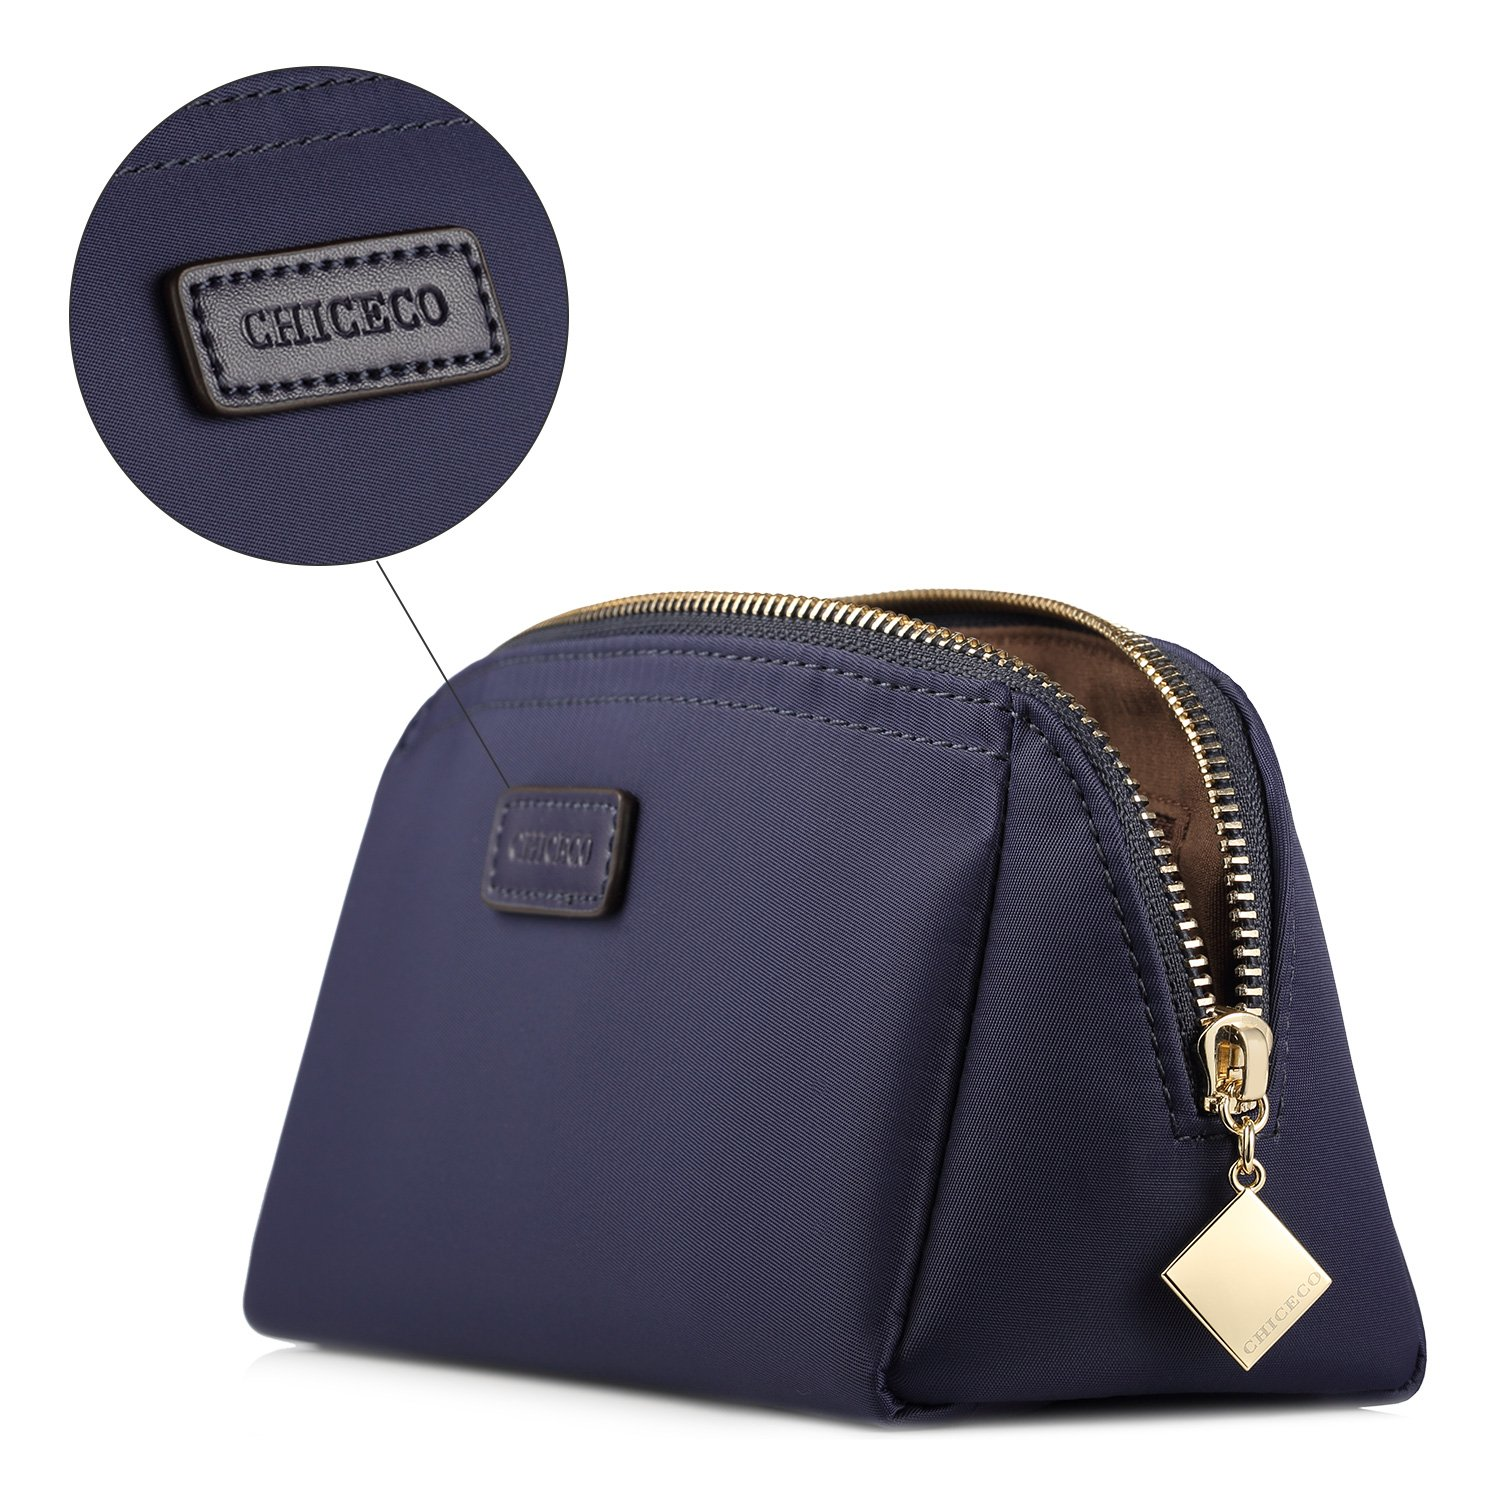 CHICECO Handy Cosmetic Pouch Clutch Makeup Bag - Navy Blue by CHICECO (Image #6)